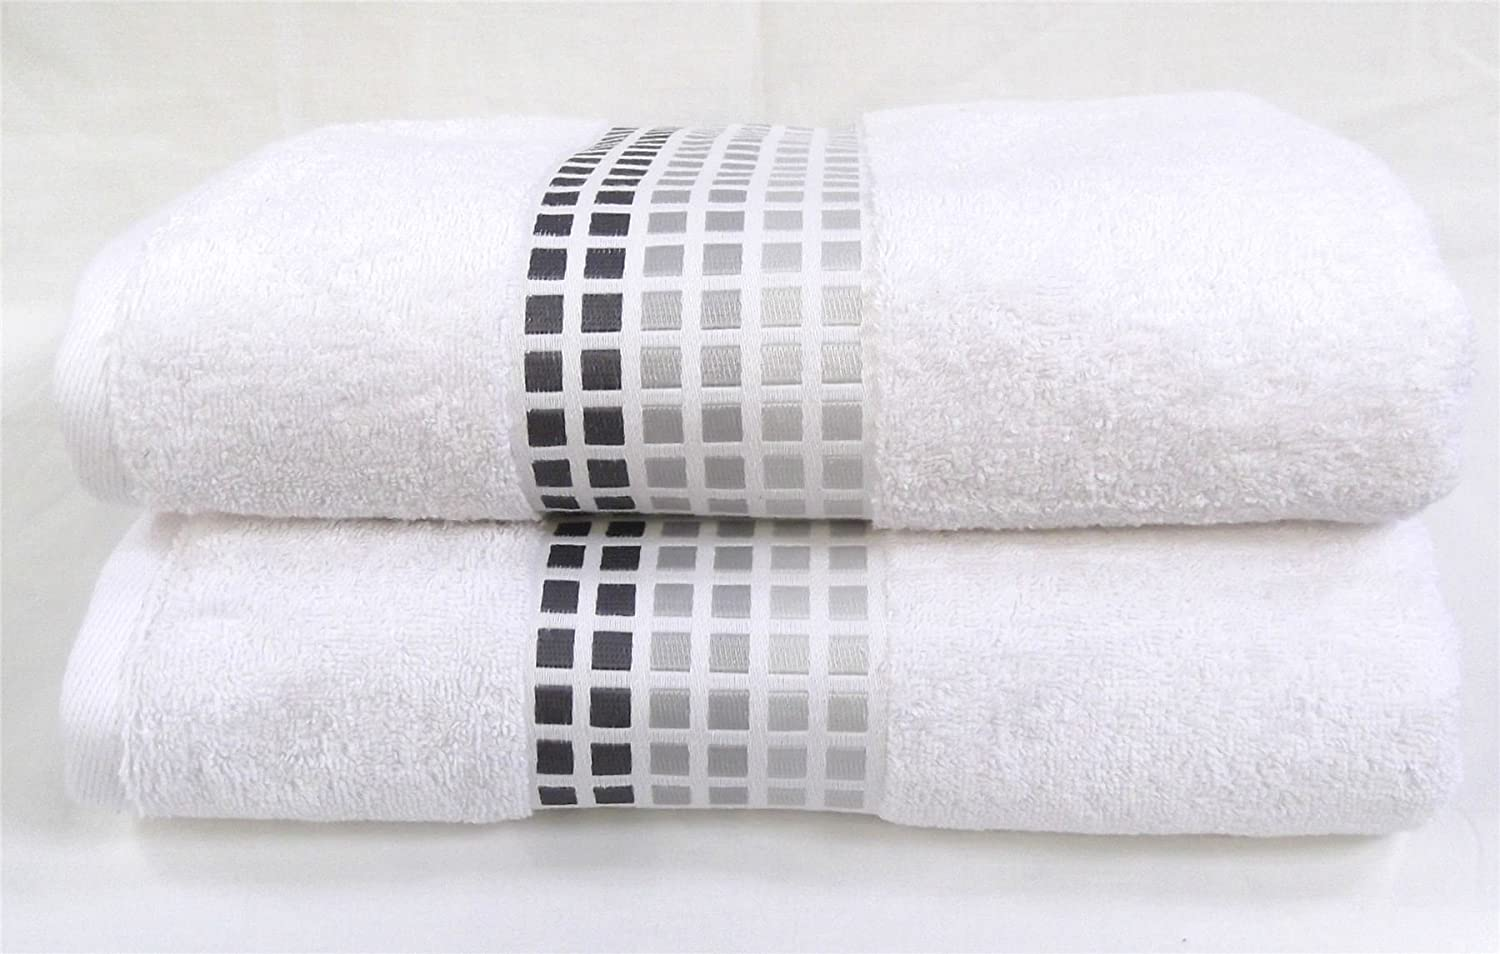 Sally Mosaic Hand Towels One Pair 2 White Black Silver Grey Squares Bathroom Super Soft 100 Cotton Hallways Amazon Co Uk Kitchen Home